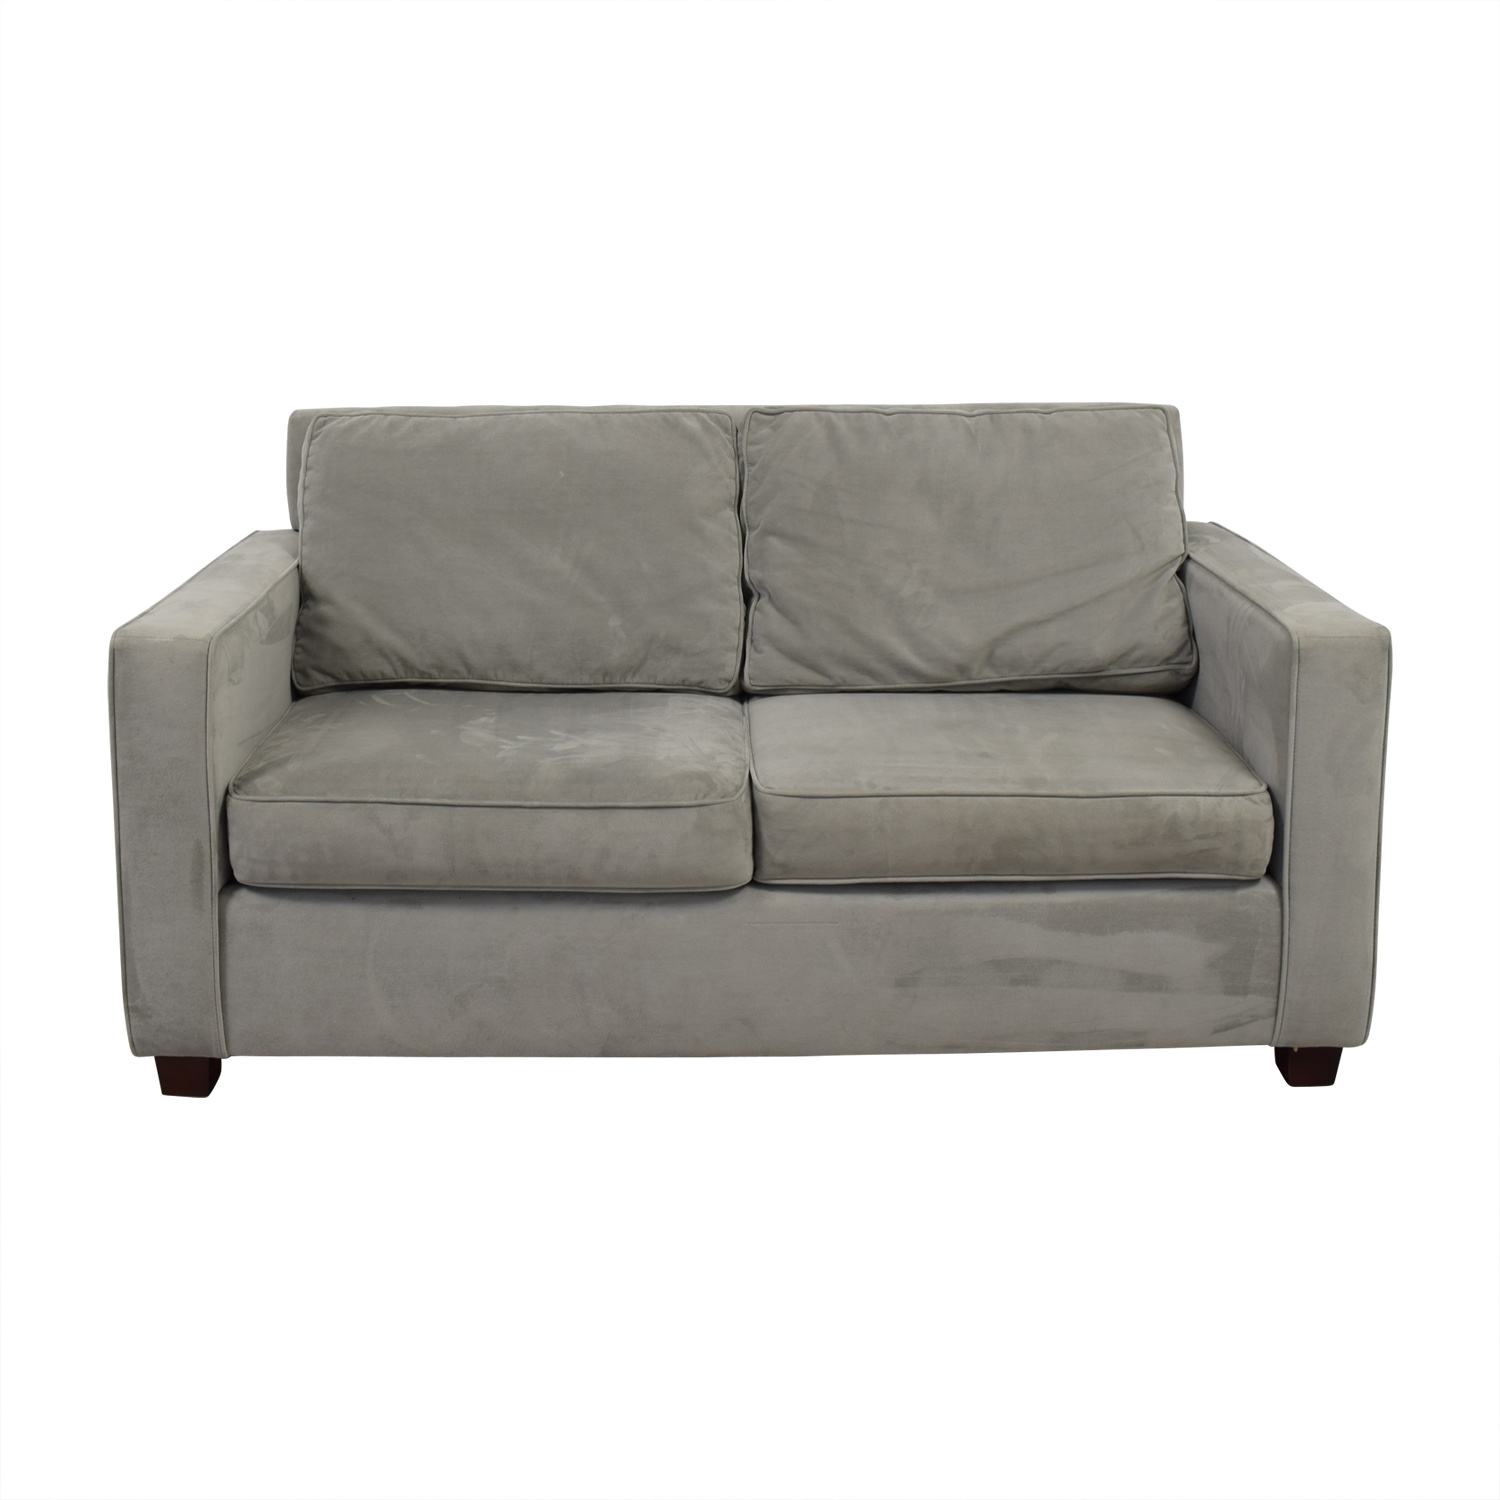 West Elm Henry Velvet Dove Grey Loveseat / Loveseats